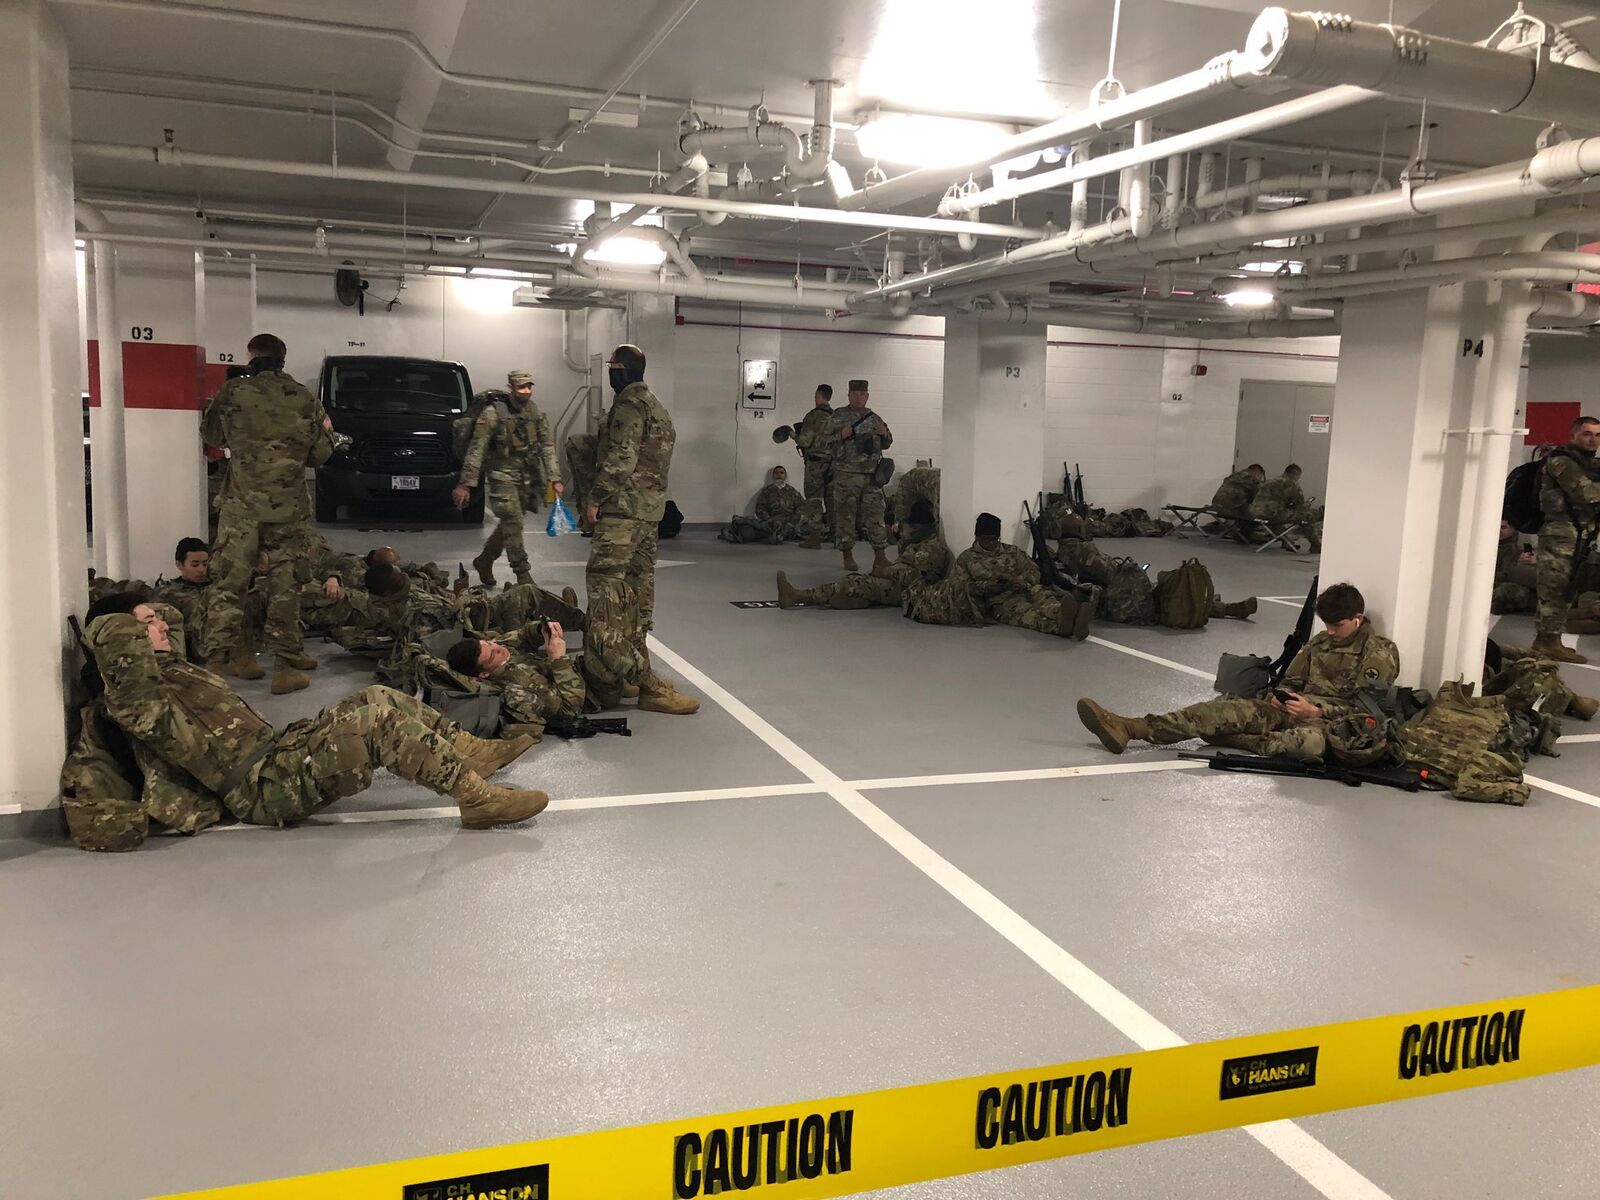 National Guardsmen forced to sleep in parking lot after being told to leave Capitol (Credit: Rep. Tim Scott/WPDE)